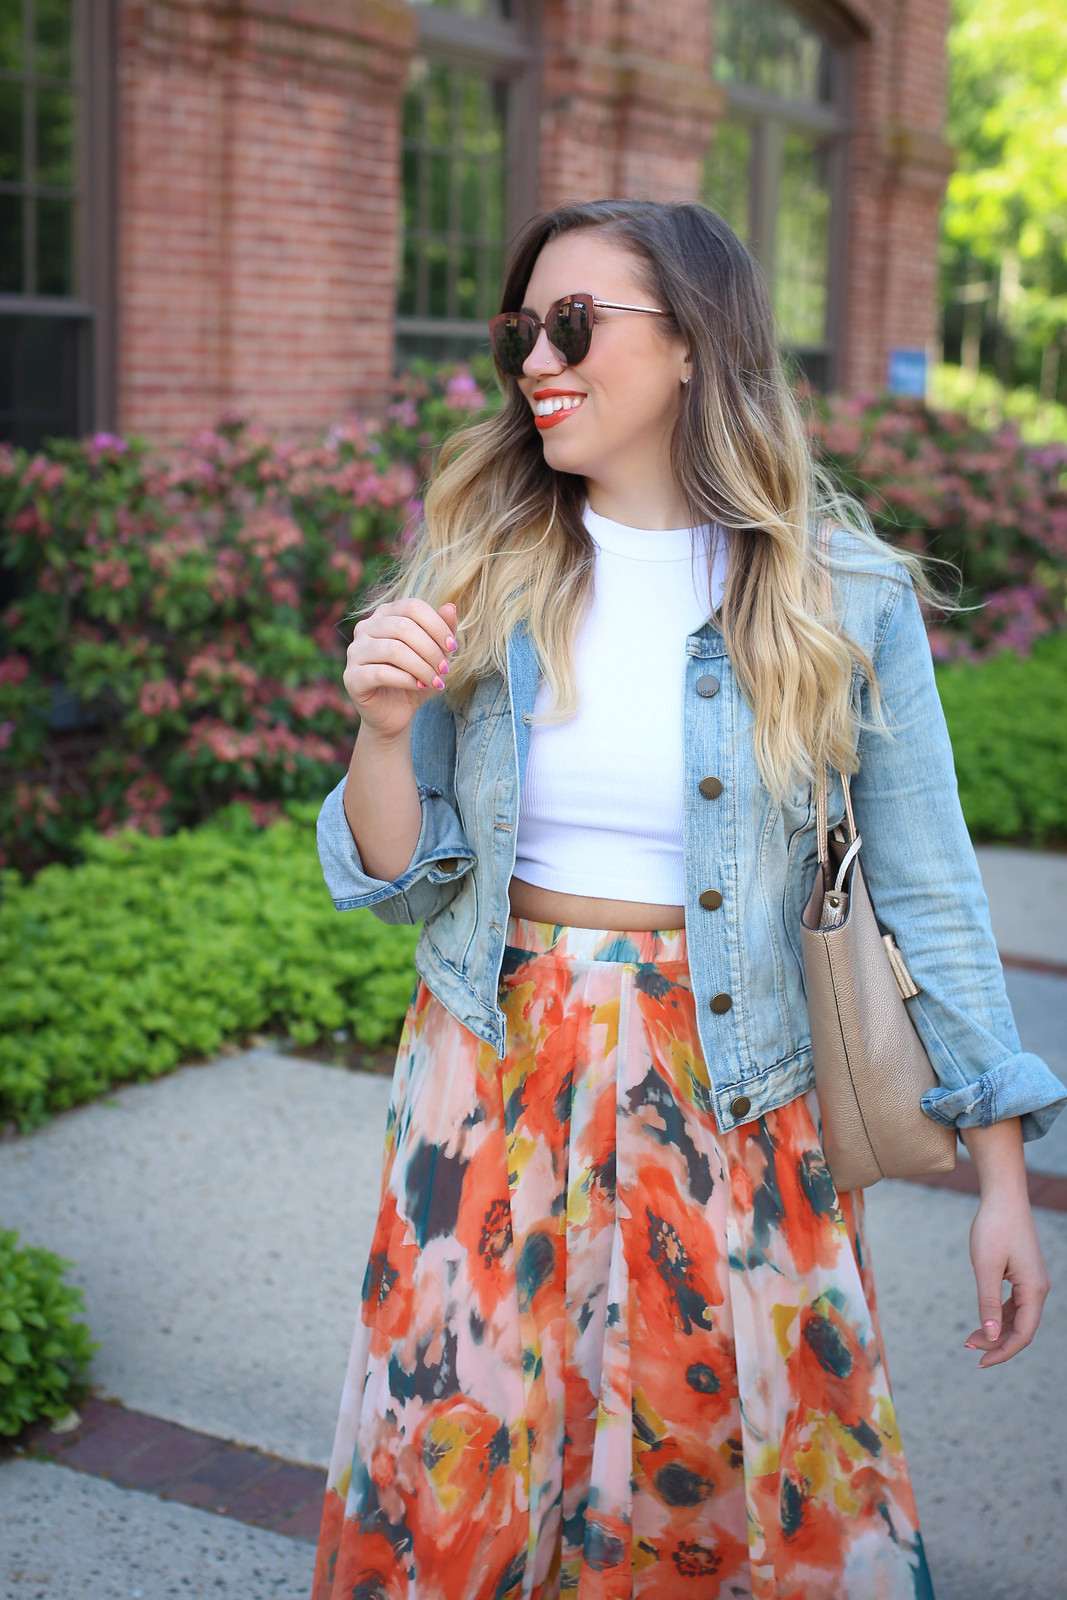 True Life: I'm Addicted to Maxi Skirts Chicwish Orange Blossom Watercolor Maxi Skirt Quay Supergirl Sunglasses elf cosmetics Lipstick Orange Dream Jackie Giardina Living After Midnite Fashion Style Blogger